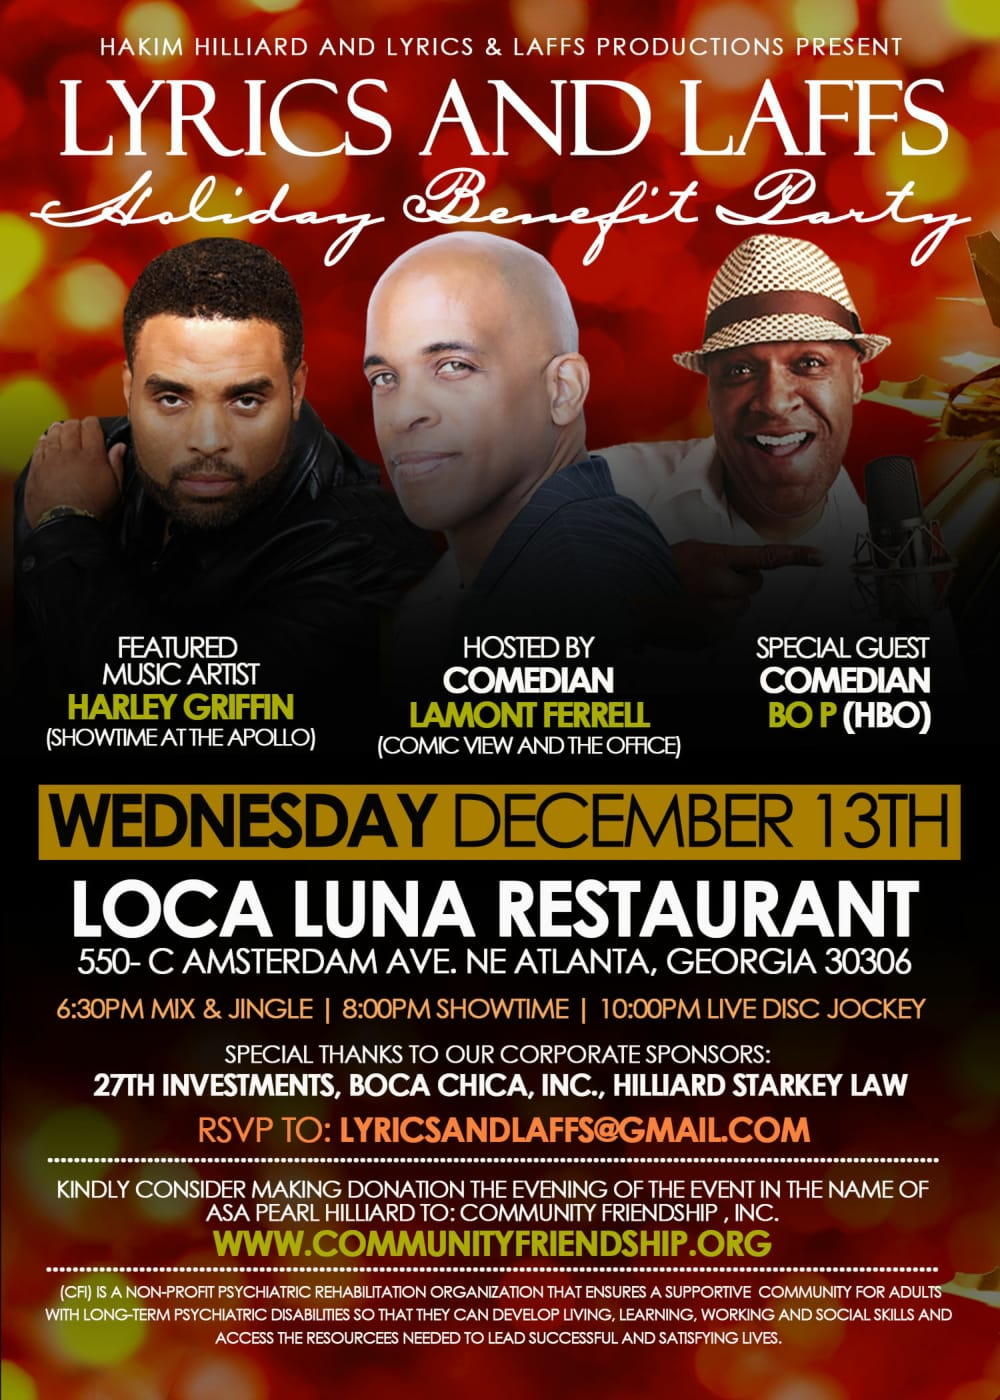 Come Party For A Cause At Loca Luna Restaurant! While You Enjoy The Comedy  And Live Music, Consider Making A Donation In The Name Of Asa Pearl  Hilliard To ...